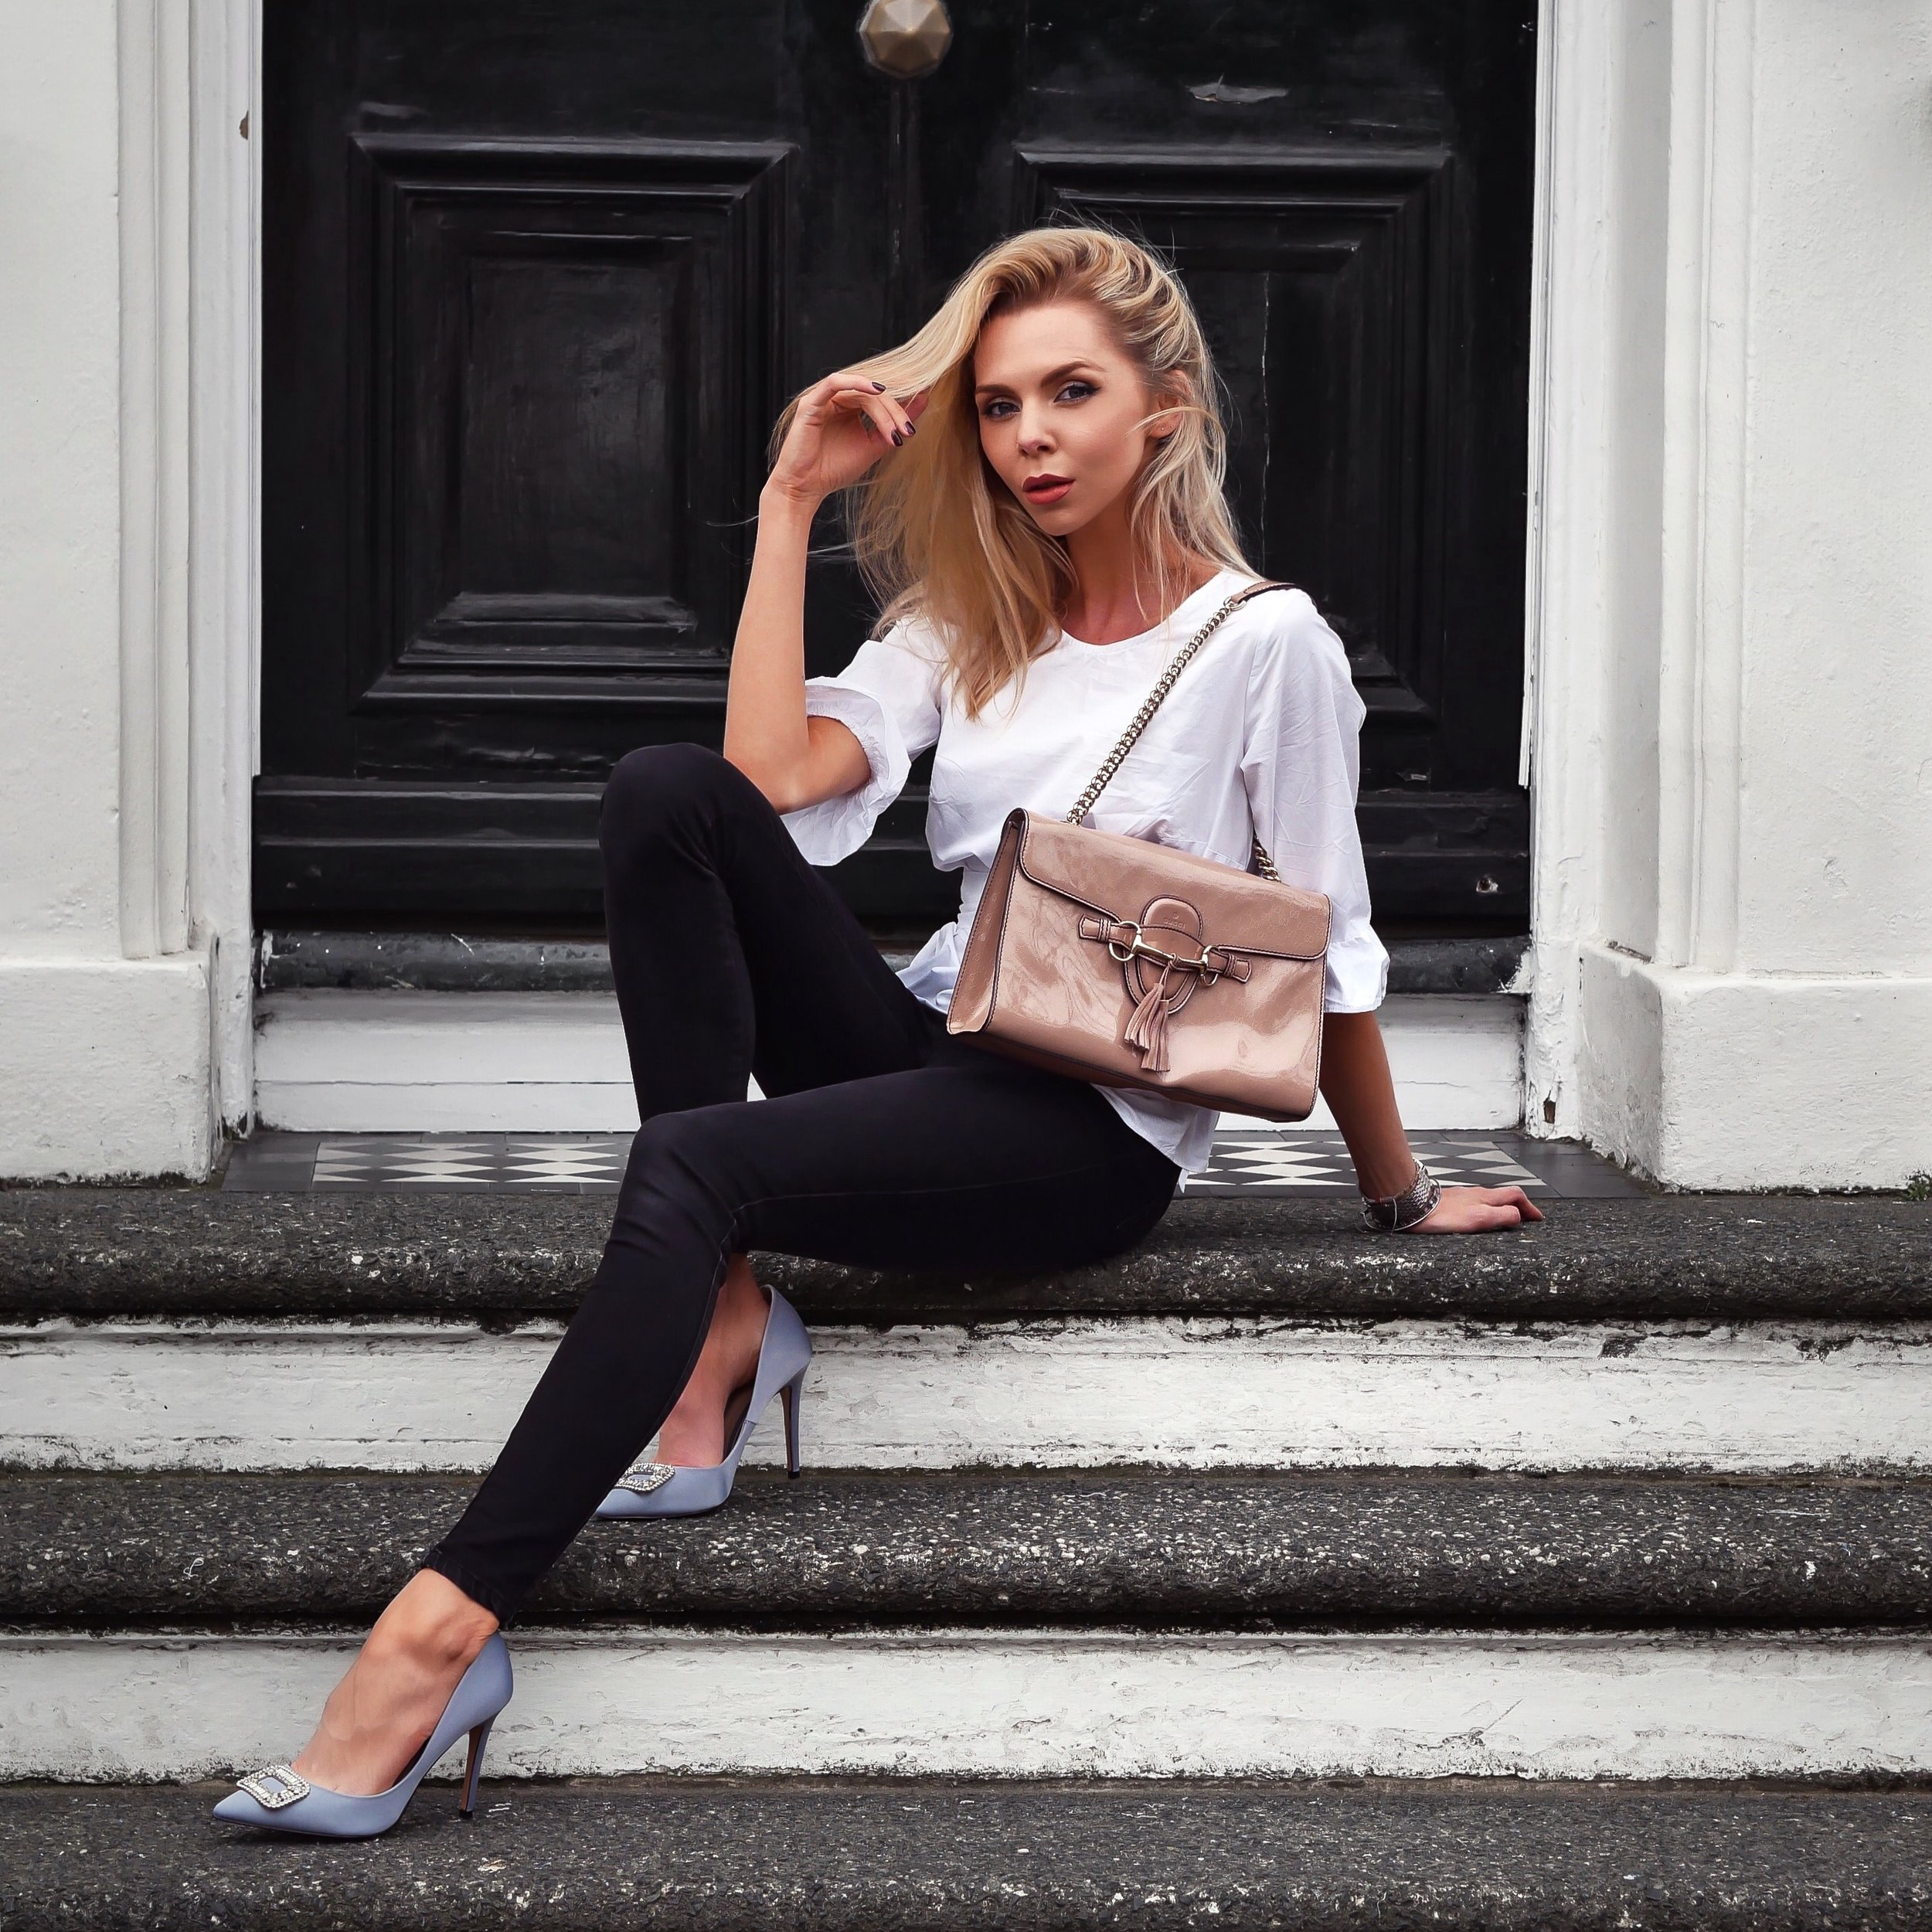 haul, affordable fashion, streetstyle, inspiration, what to wear, fashion, lookbook, style, fashion blogger, laura blair, youtuber, london fashion girl, debenhams, red